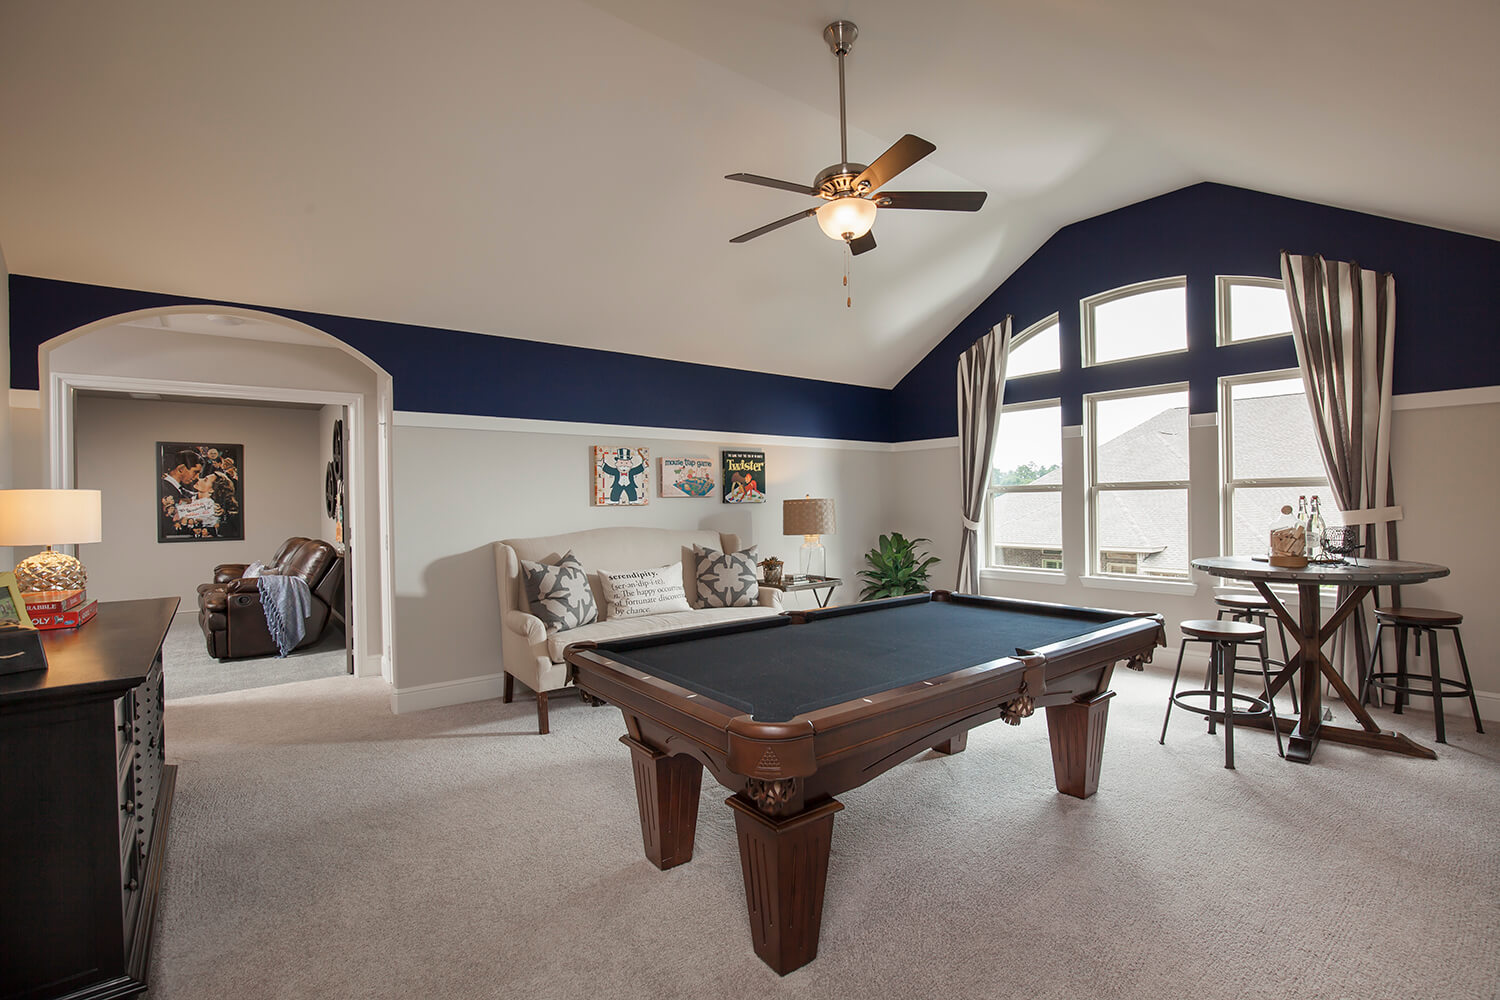 Game Room - The Katy (8264 Plan)